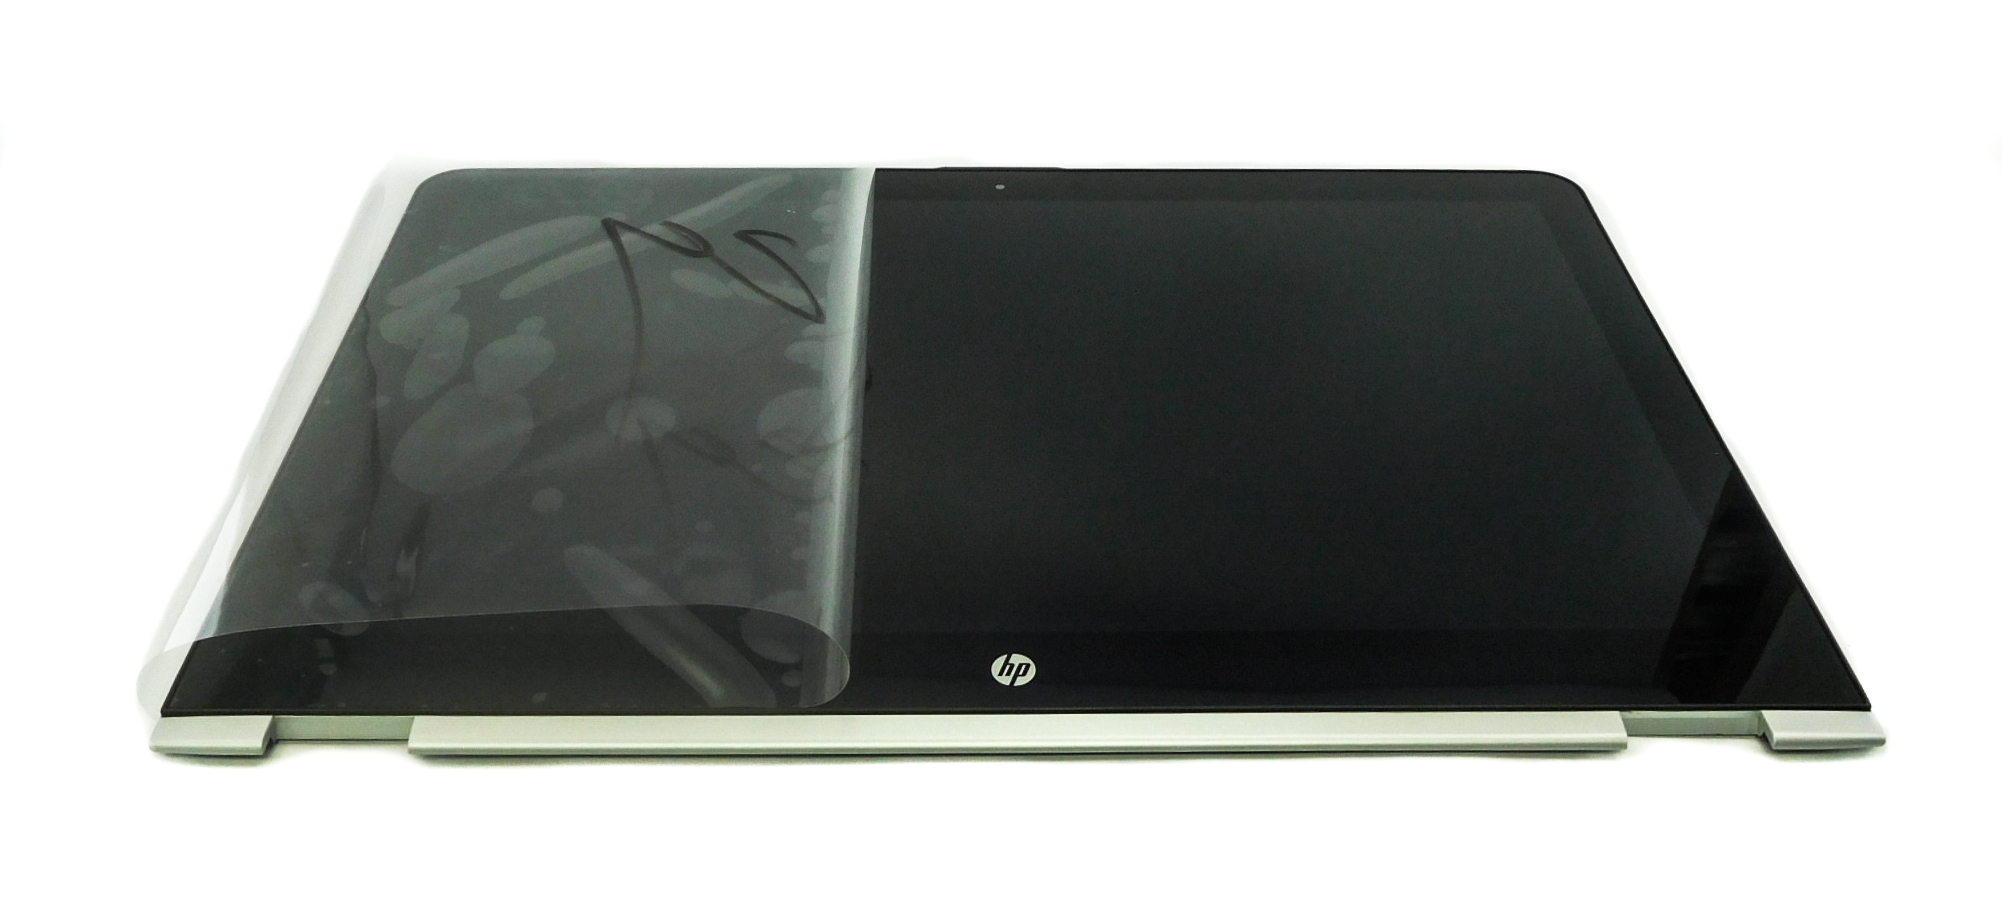 HP Envy x360 FHD Touchscreen LCD Panel Assembly 30pin 856811-001